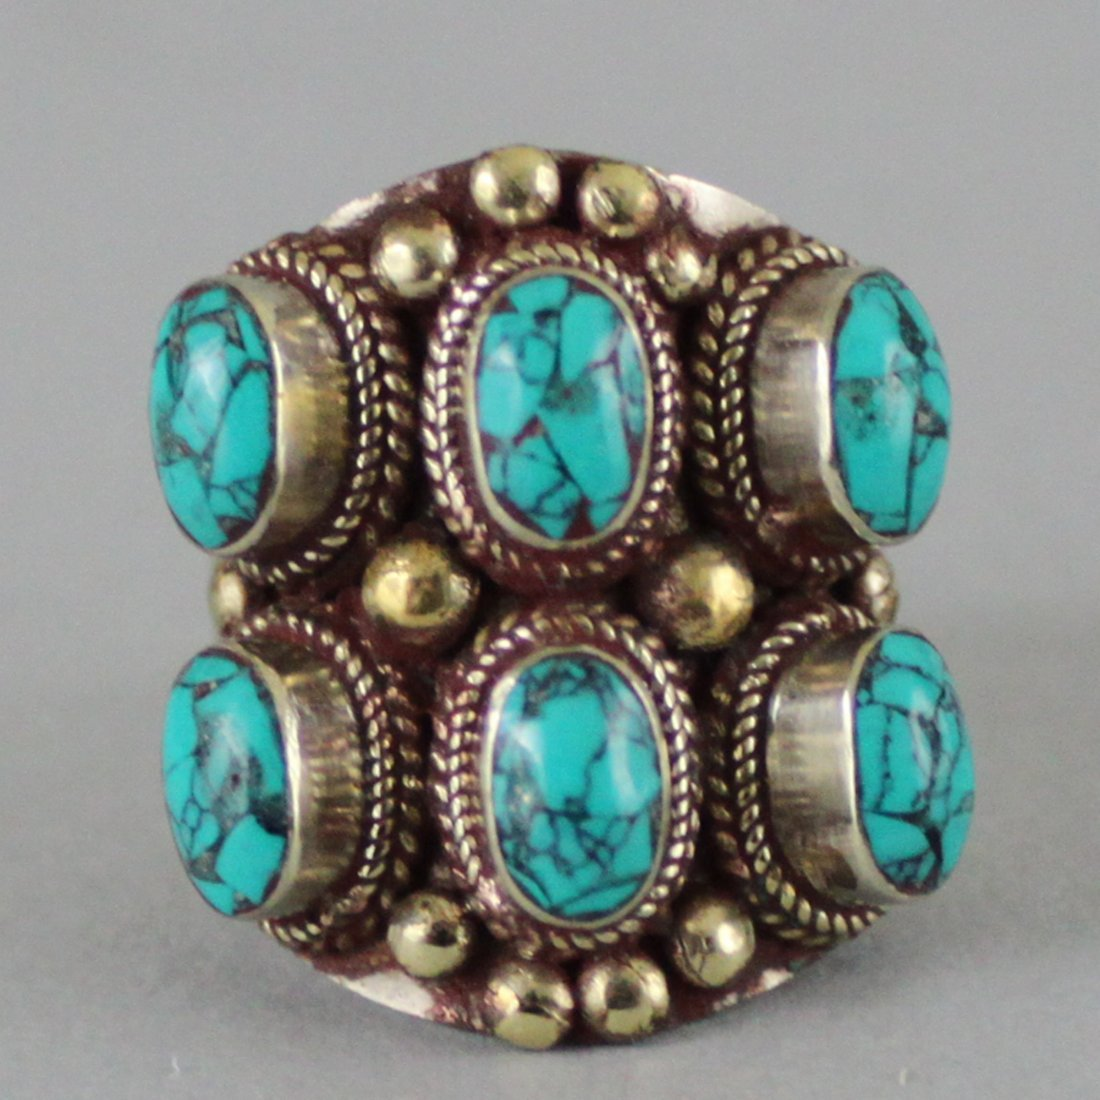 Nepal Tibet Ring Inlaid Turquoise & Coral